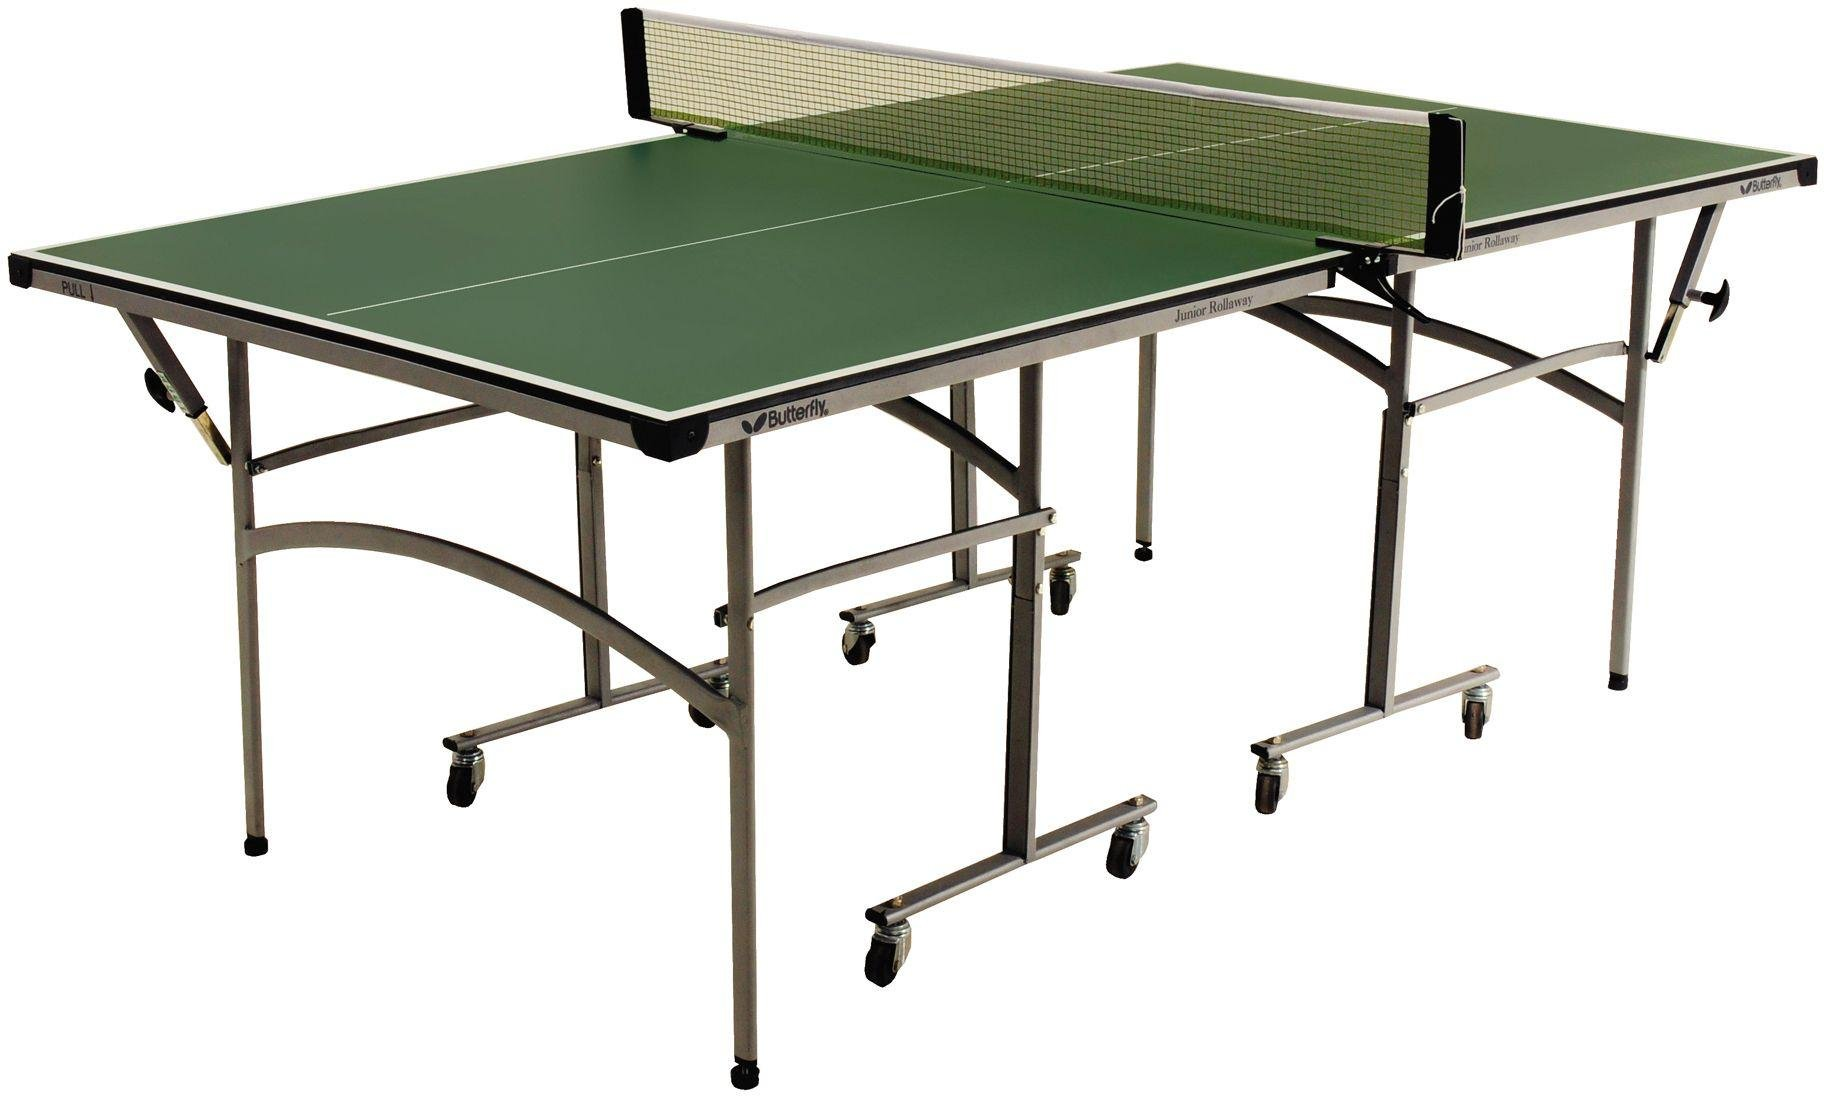 Image of Butterfly Junior Rollaway Table Tennis Table.